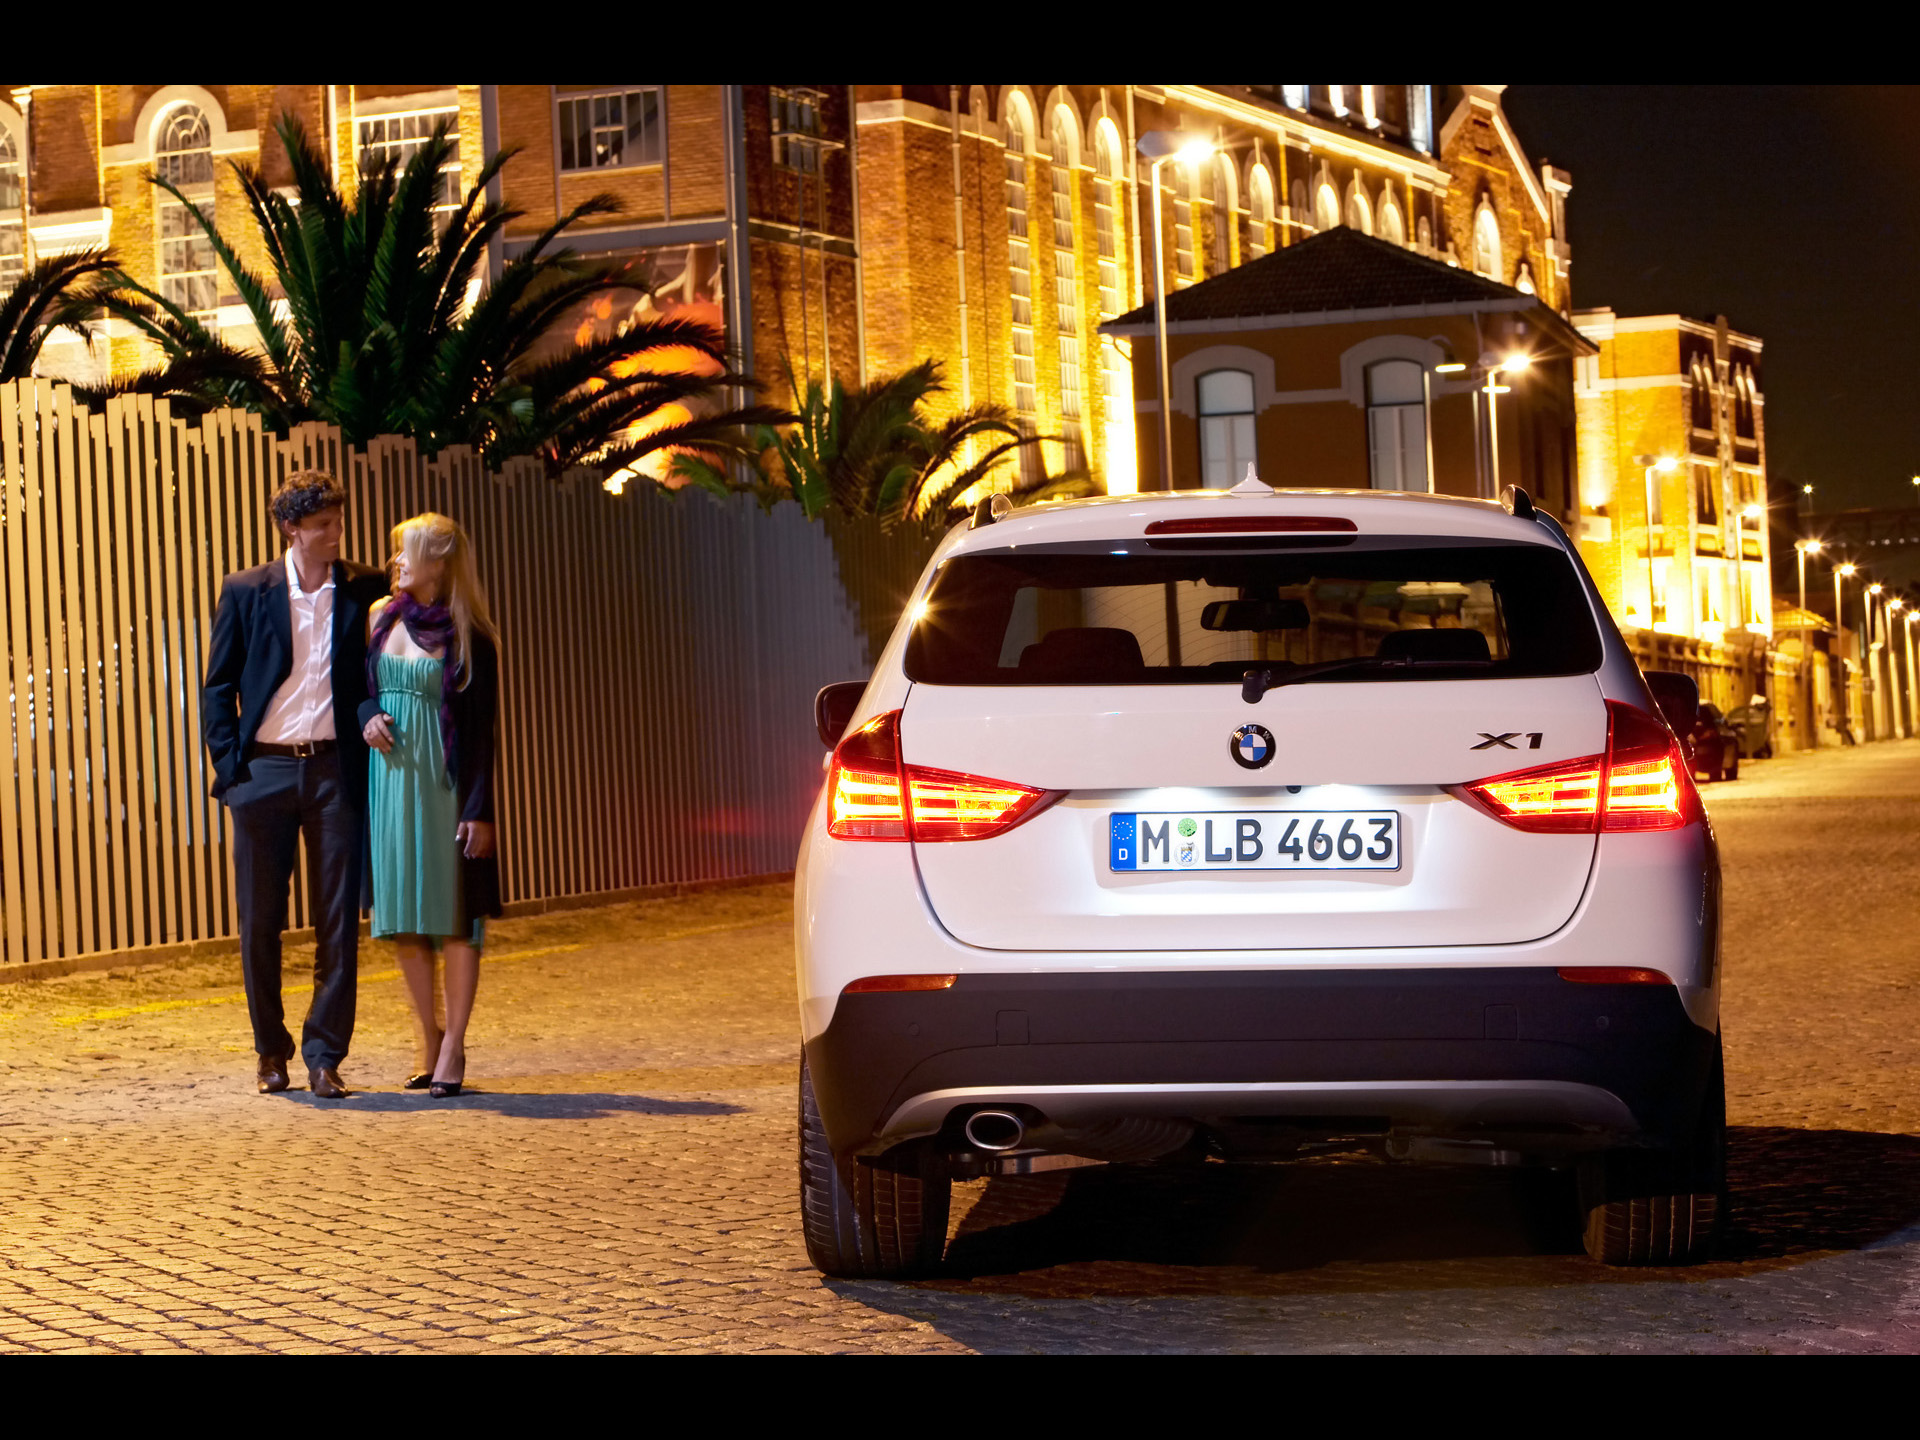 BMW X1 and couple wallpapers | BMW X1 and couple stock photos